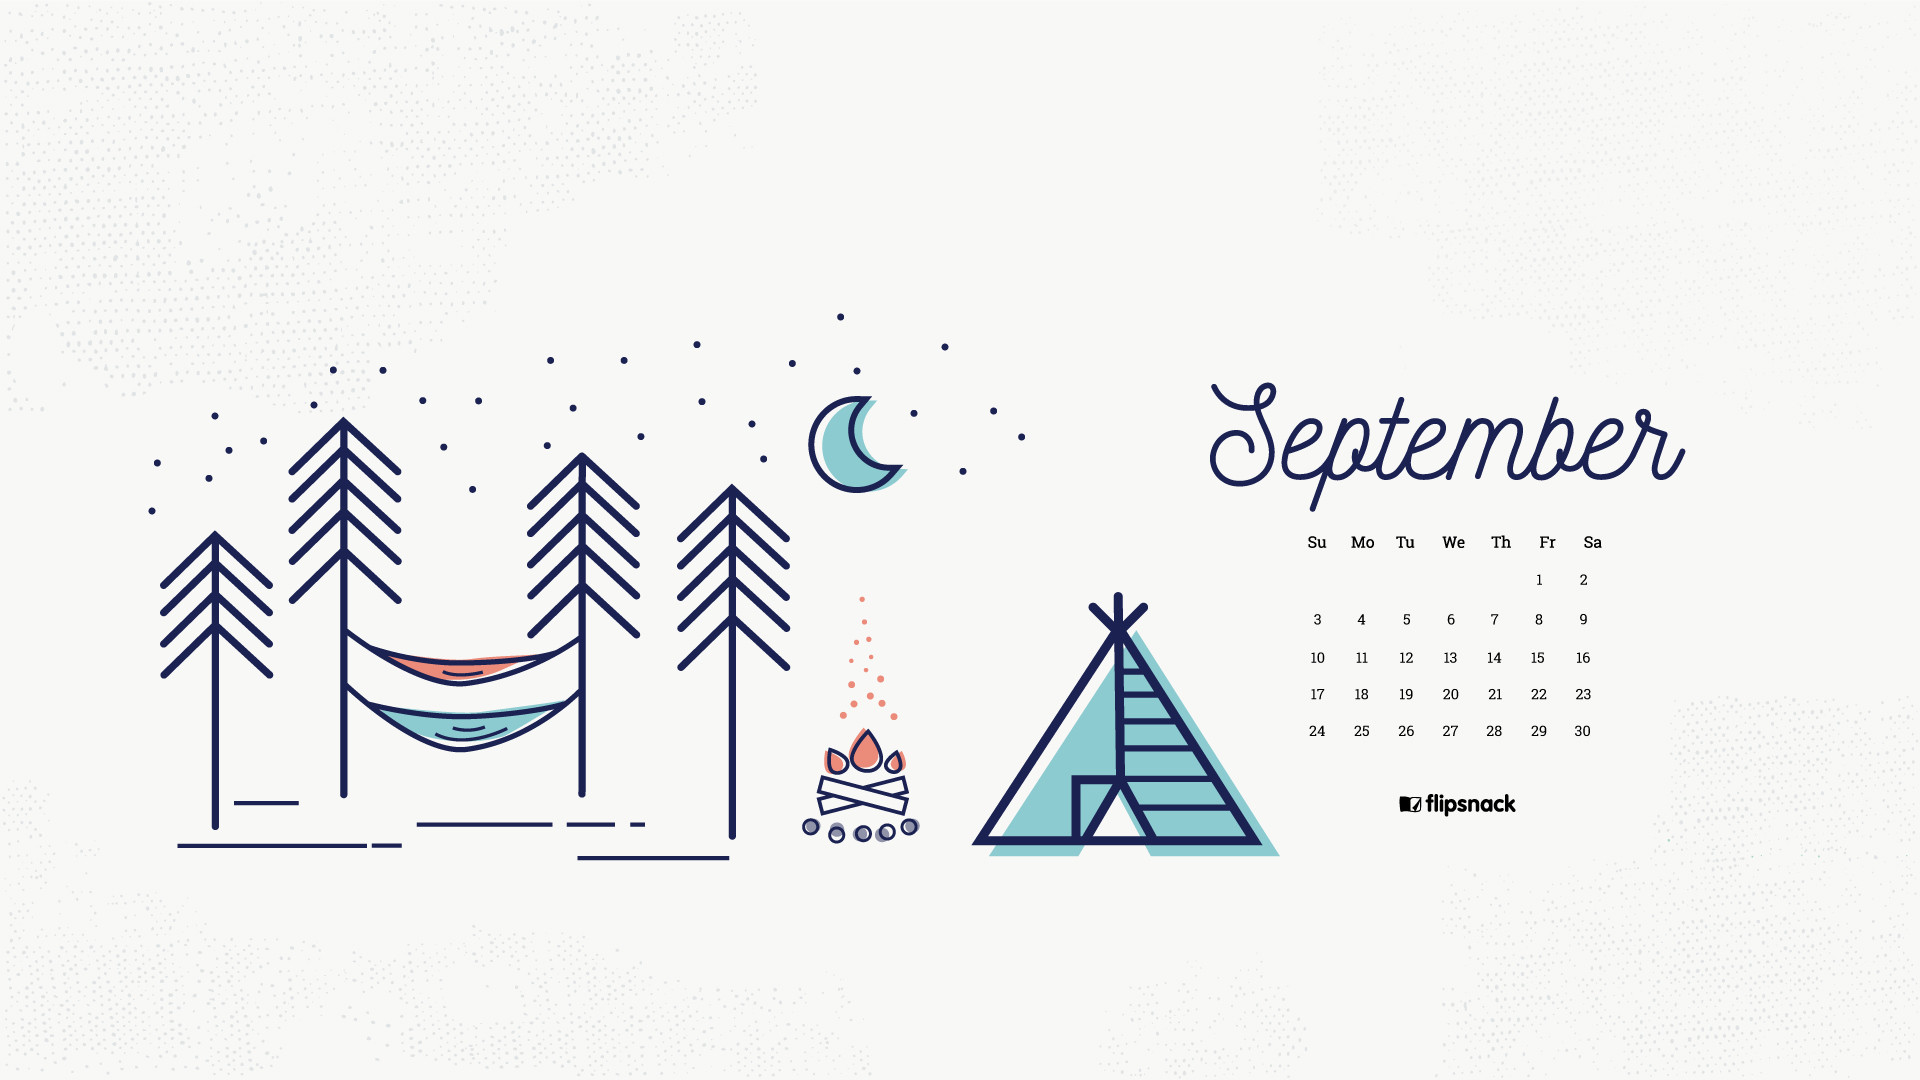 The Fall Tv Series Wallpaper Desktop Wallpapers Calendar September 2018 183 ①